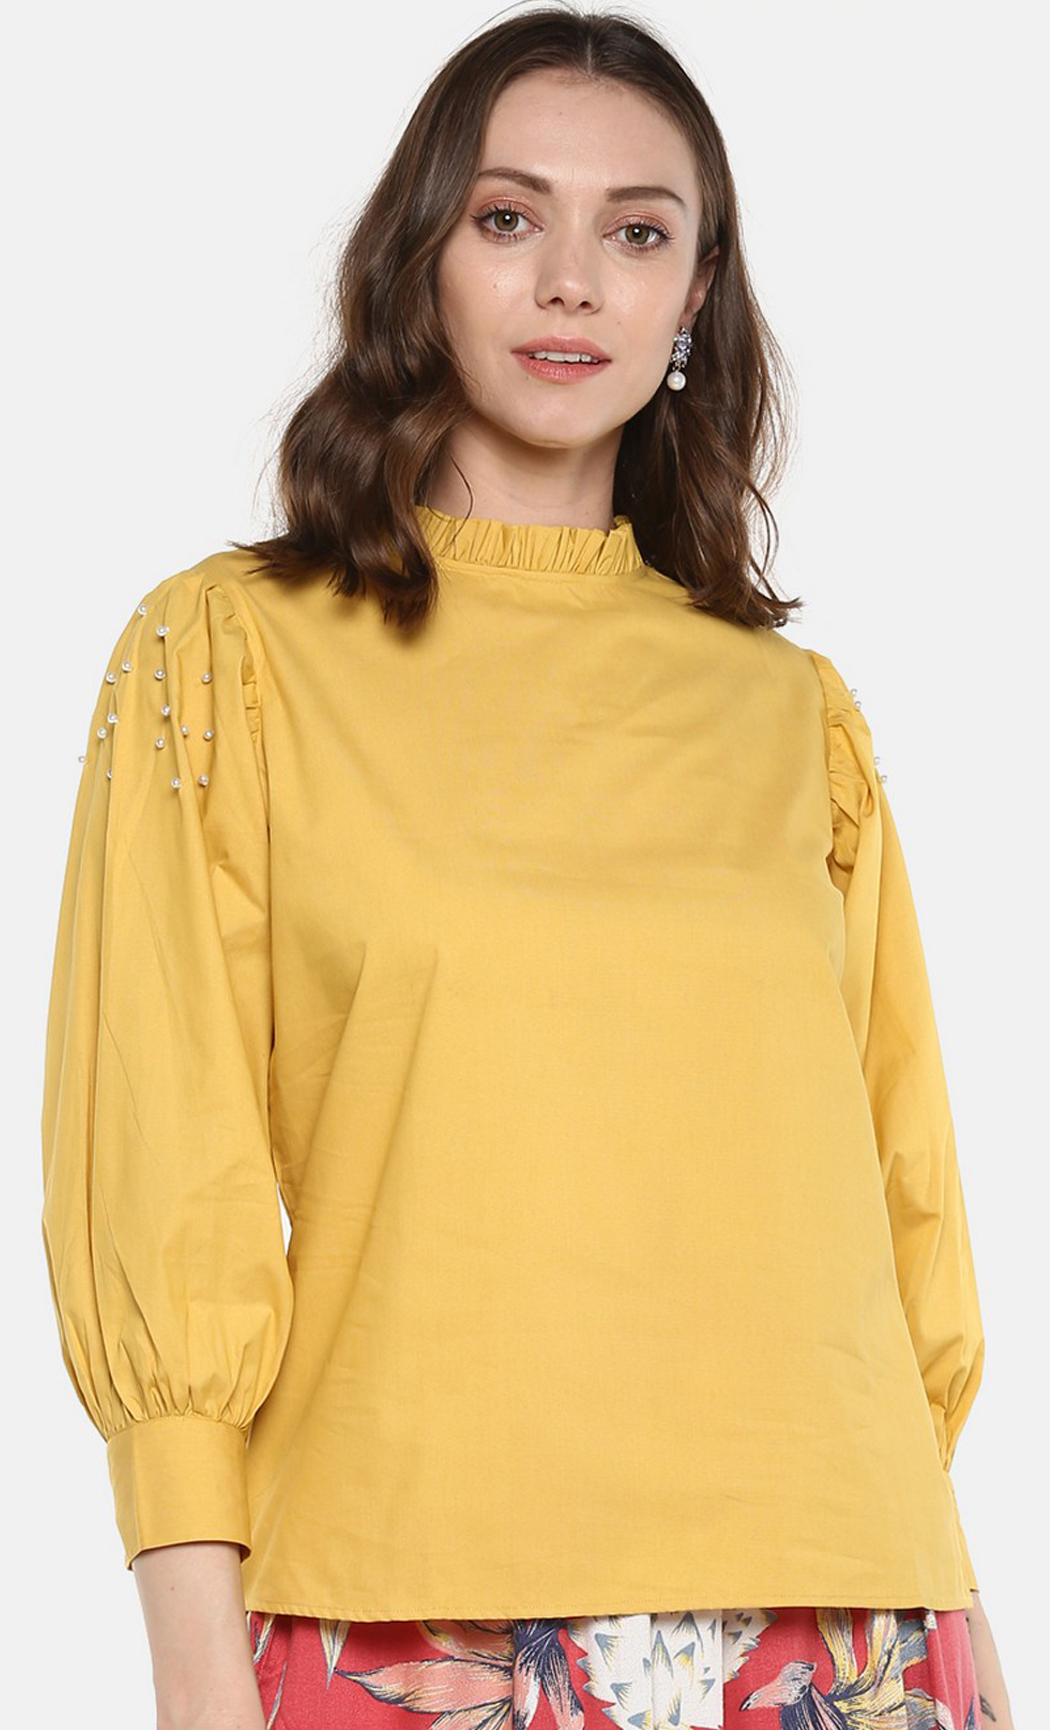 Yellow Wonders and Whims Beaded Top. Buy Online